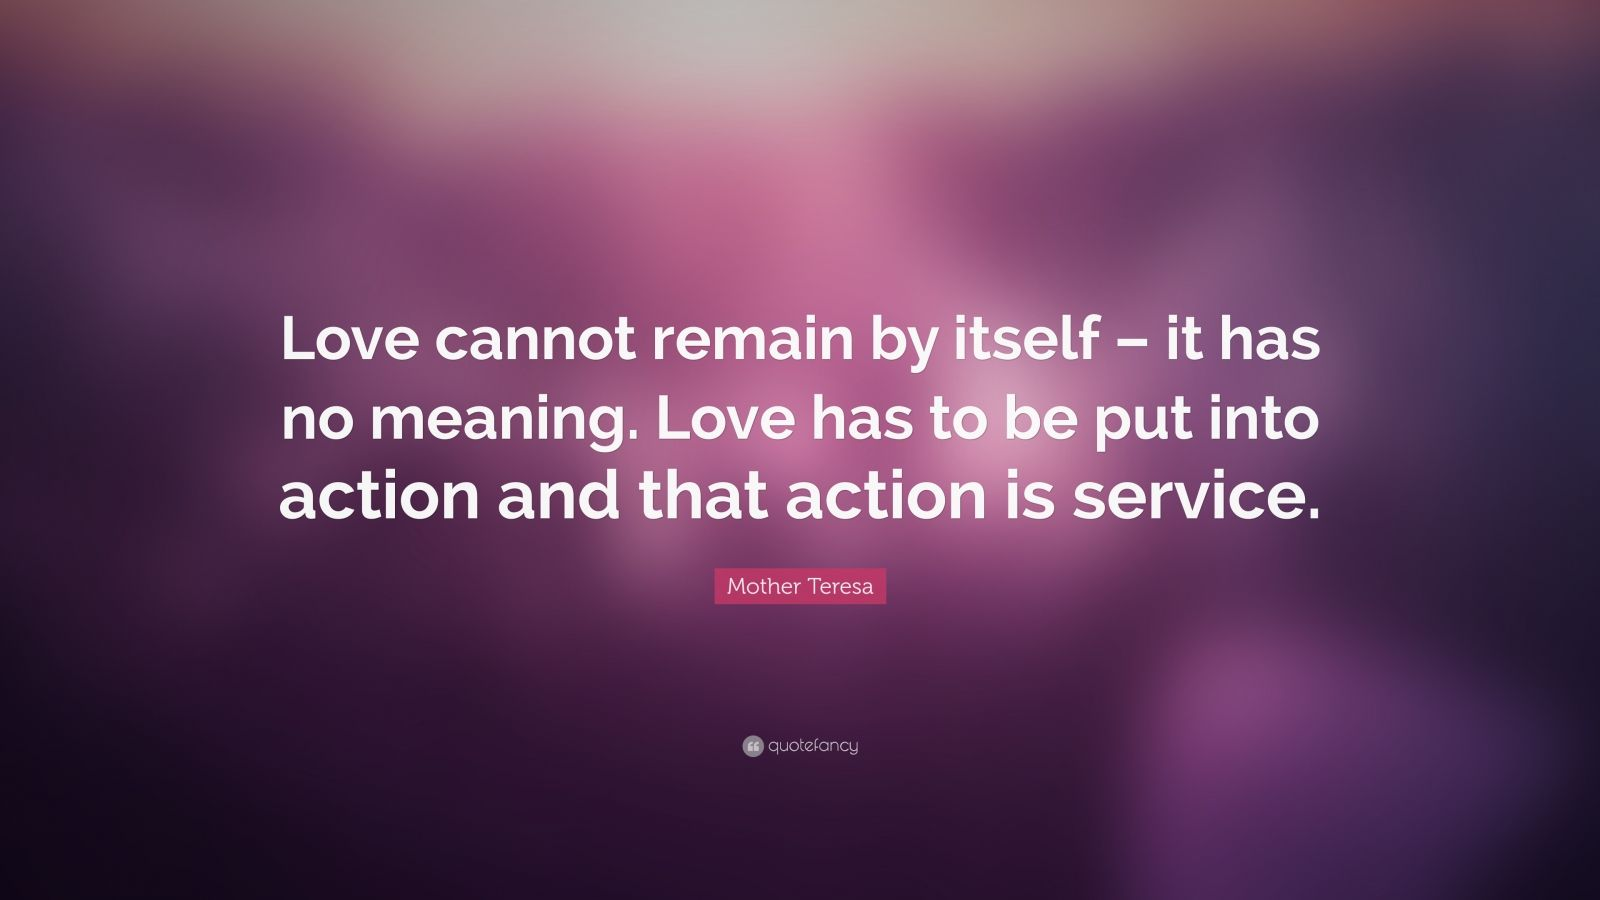 """Mother Teresa Quote: """"Love cannot remain by itself – it has no meaning. Love has to be put into action and that action is service."""""""